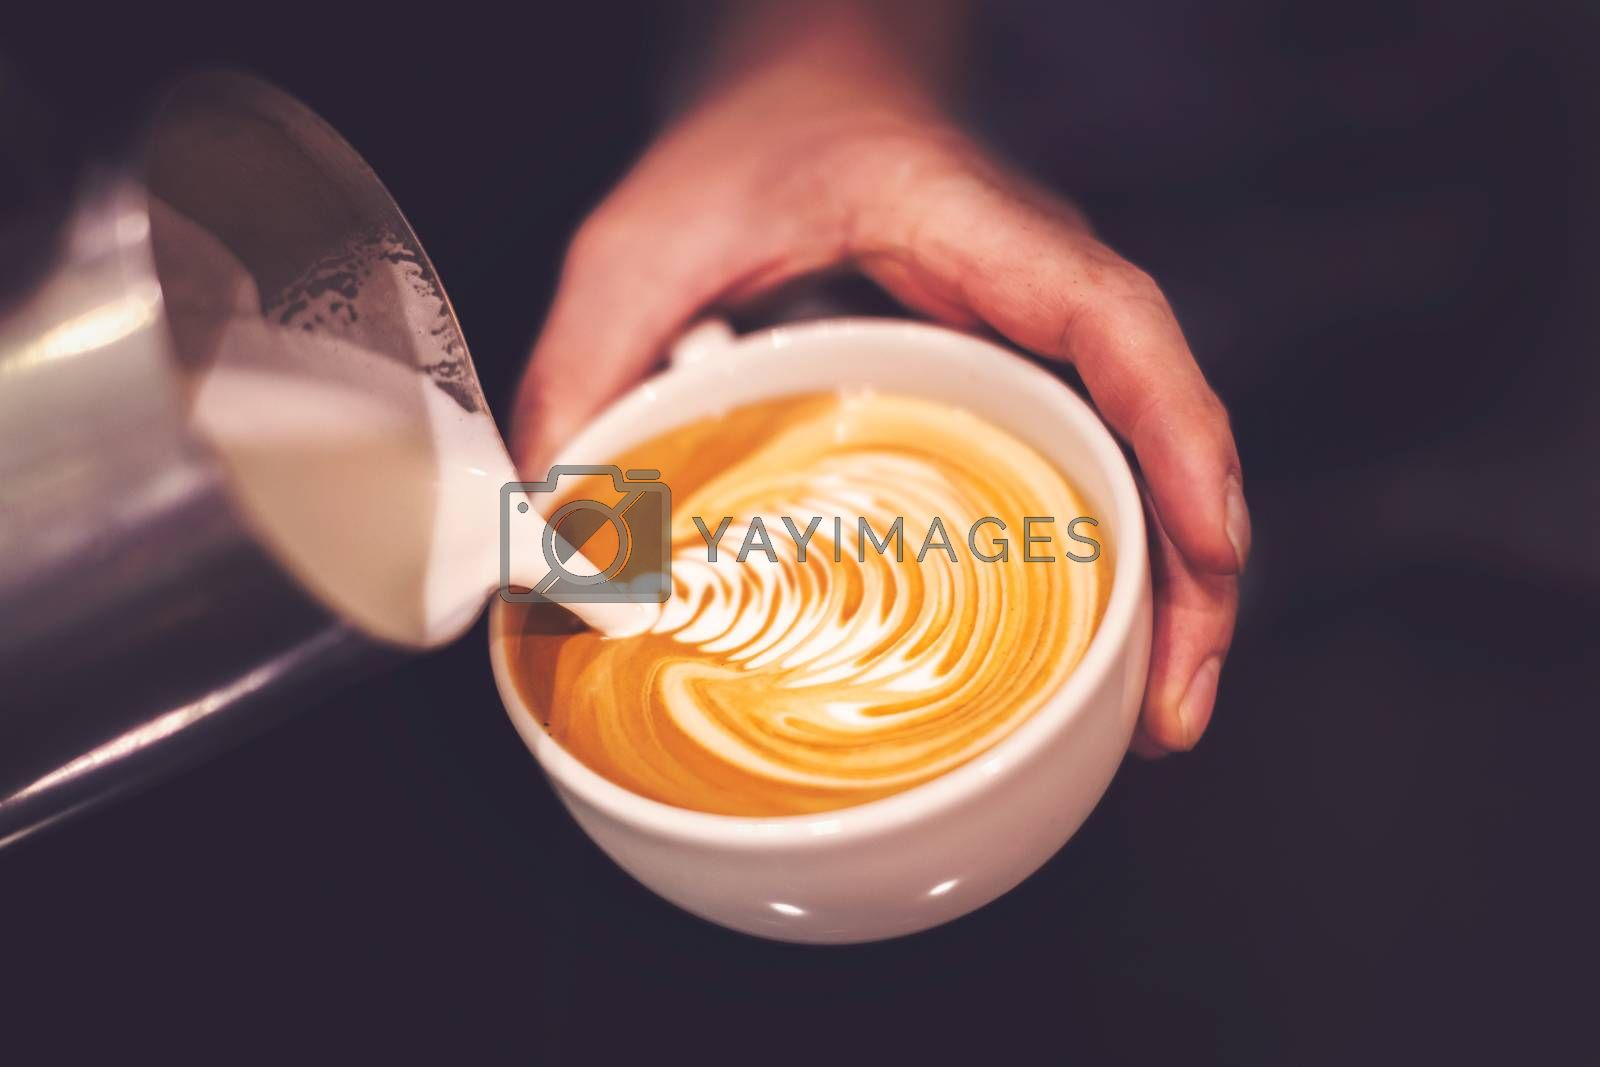 Barista pouring coffee into a cup creating beautiful pattern